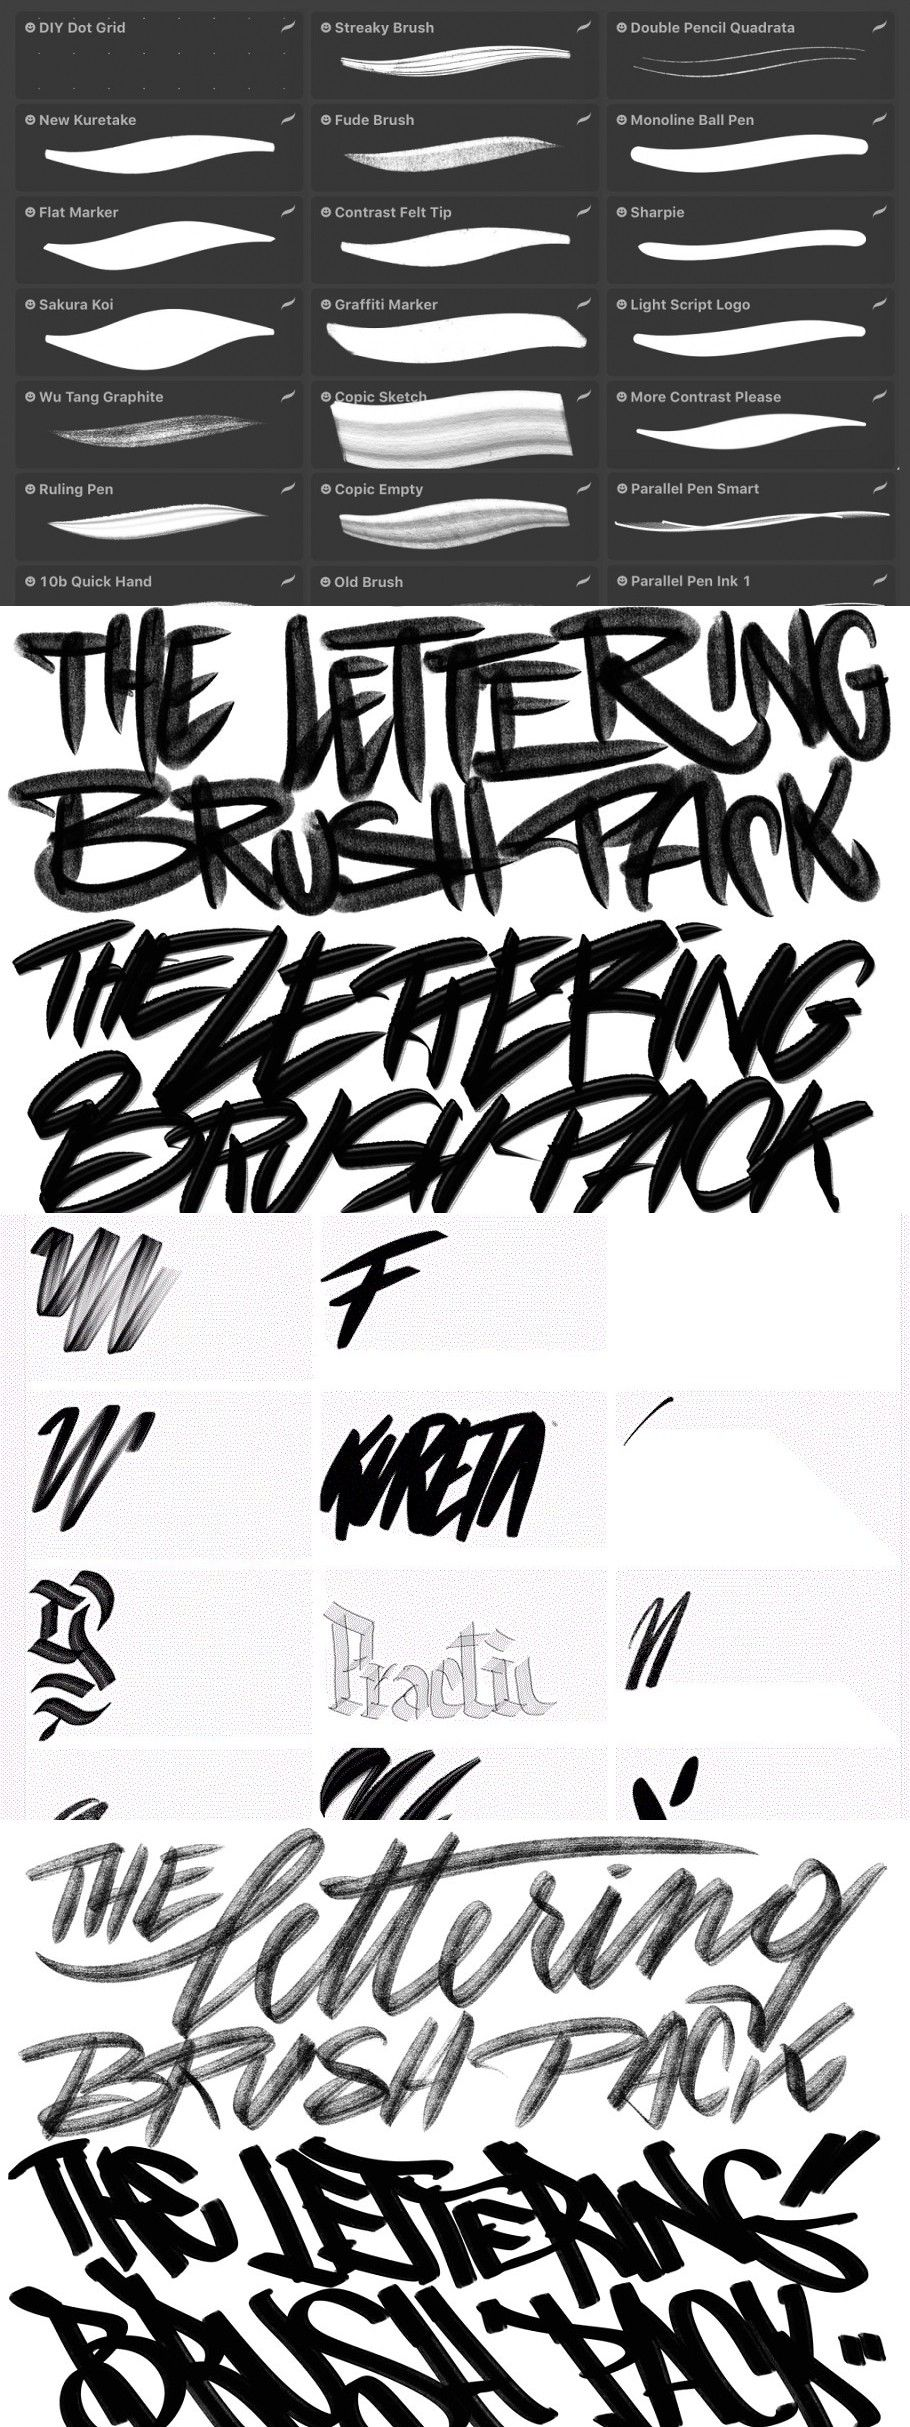 Download The Procreate Lettering Brush Pack (With images ...